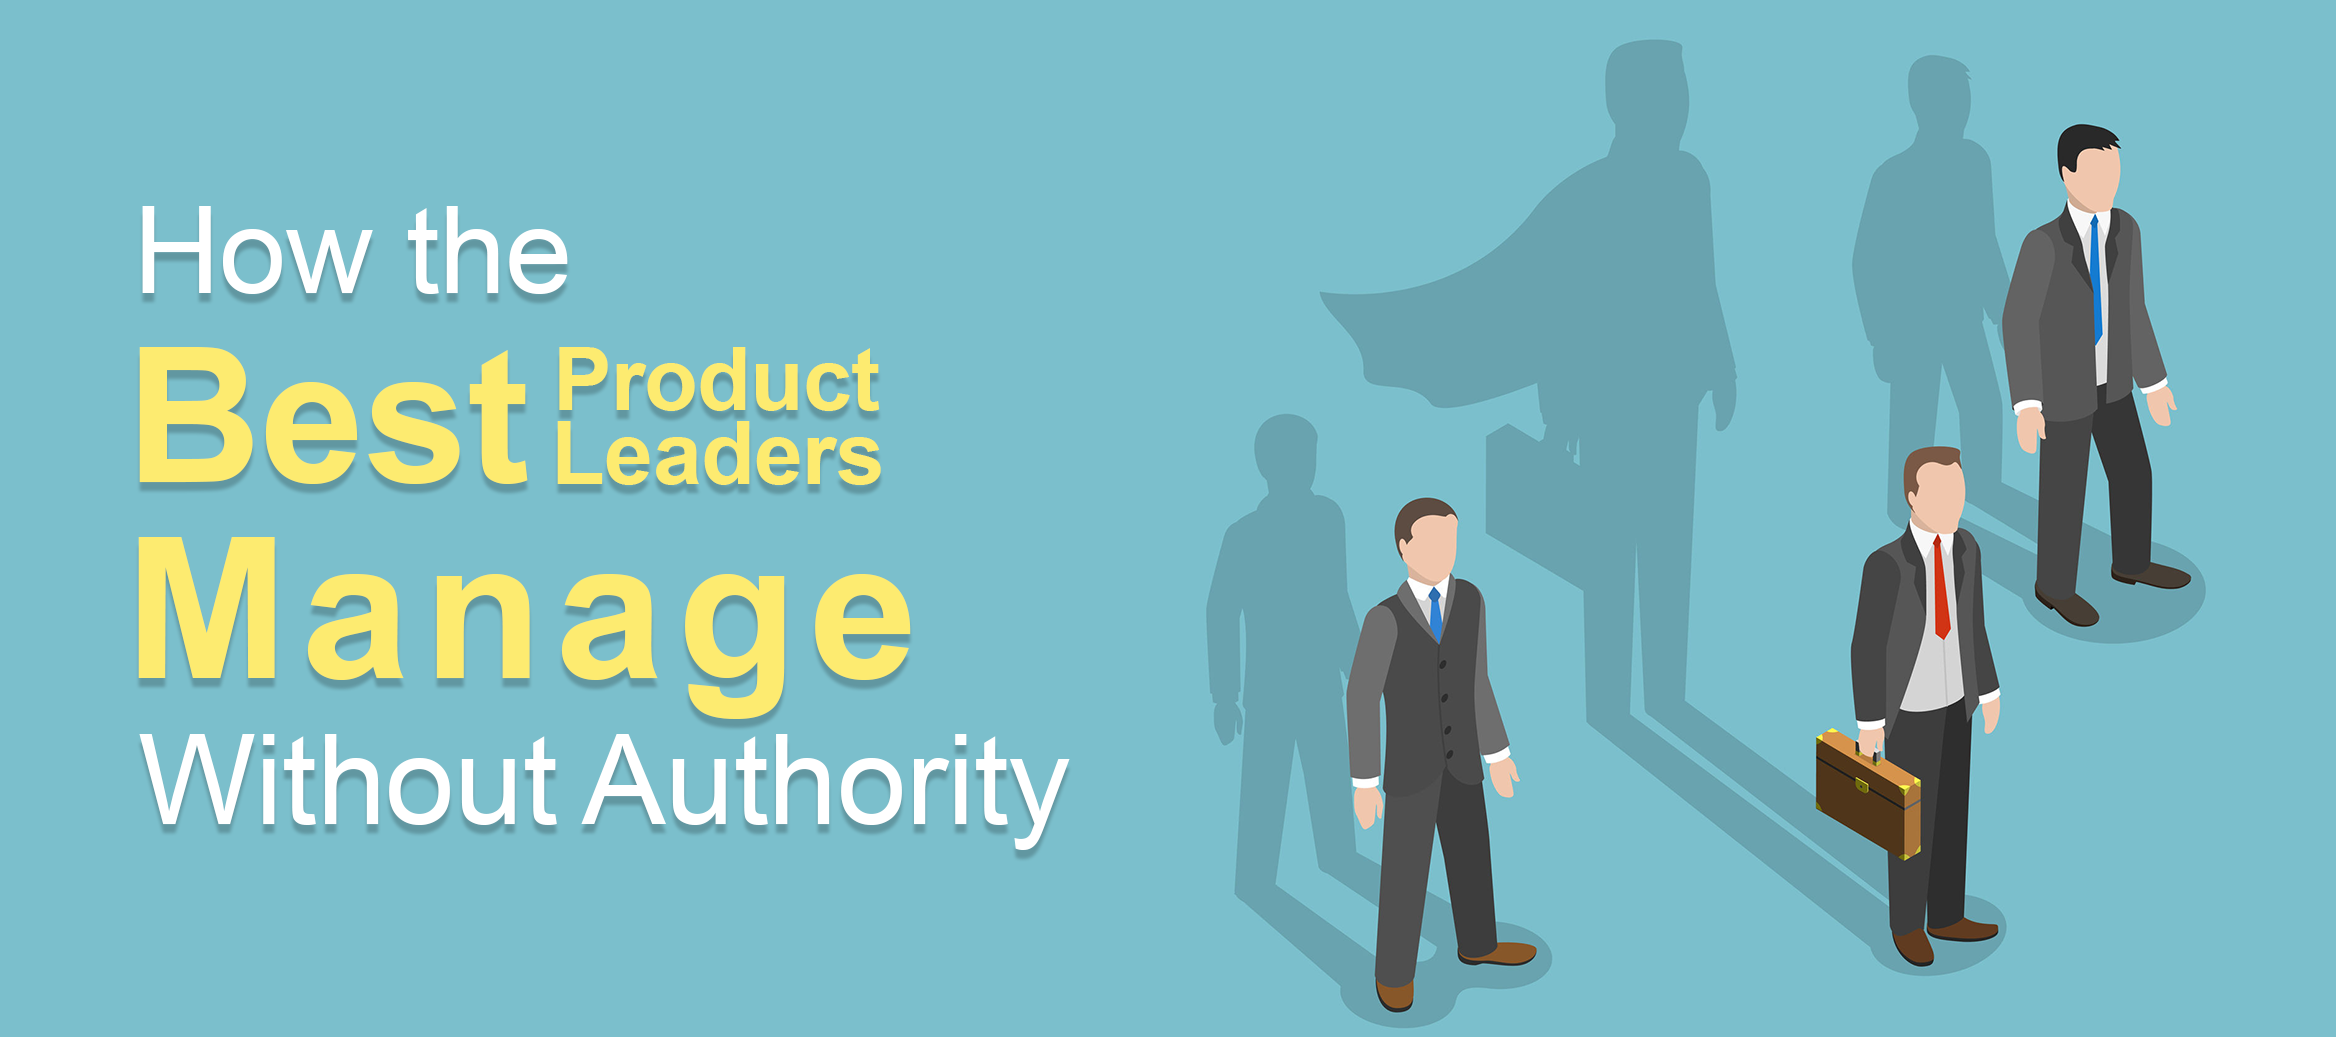 How the Best Product Leaders Manage Without Authority